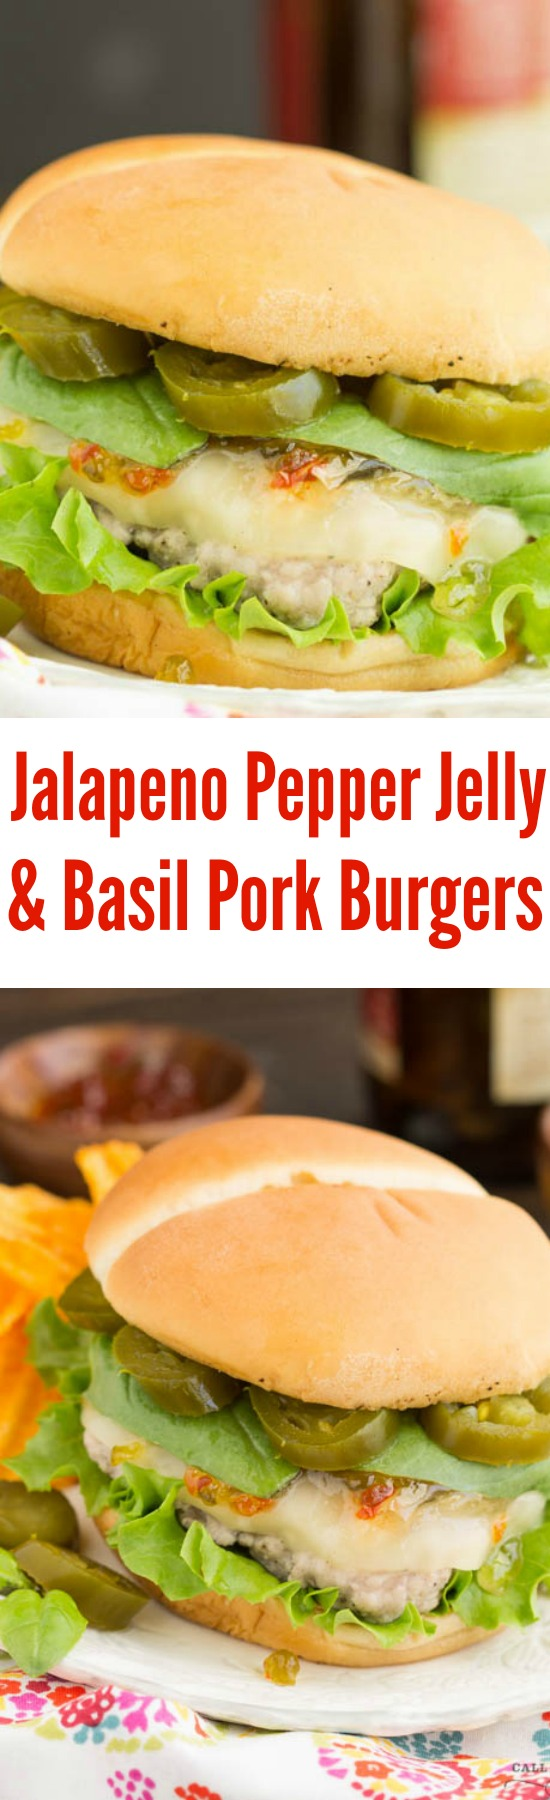 Spicy Jalapeno Pepper Jelly and Basil Sauce Pork Burgers is a fresh and delicious spin on a hamburger recipe. A peppery and spicy sauce beautifully flavors ground pork burgers.